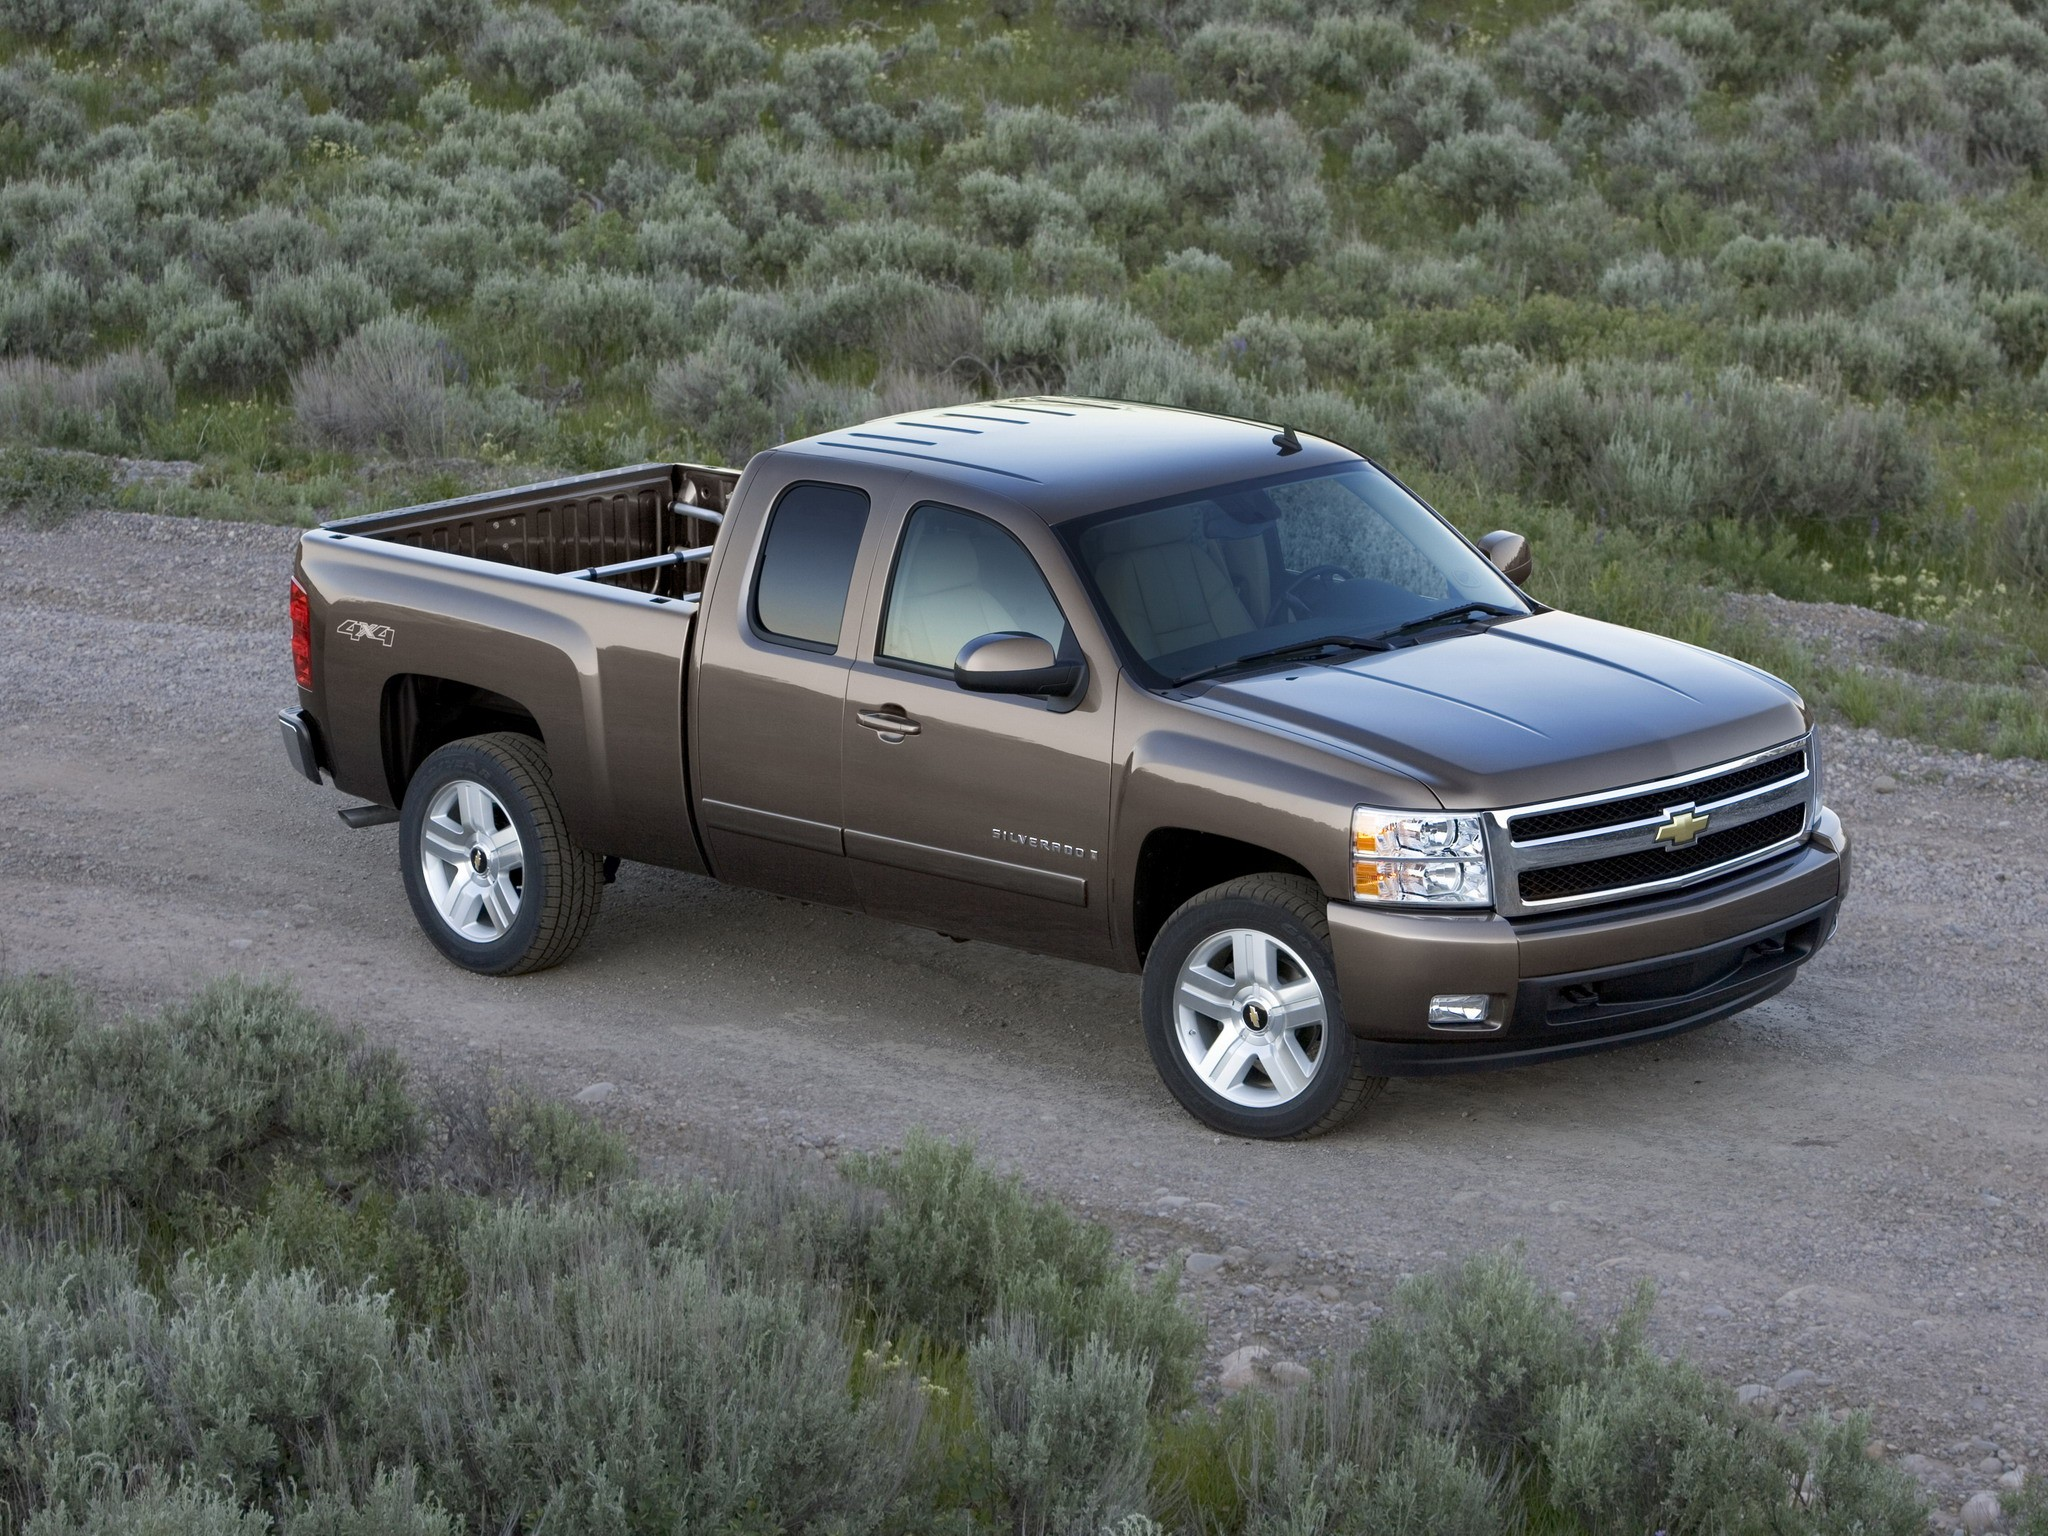 fl st port sale for used lt image silverado chevrolet lucie